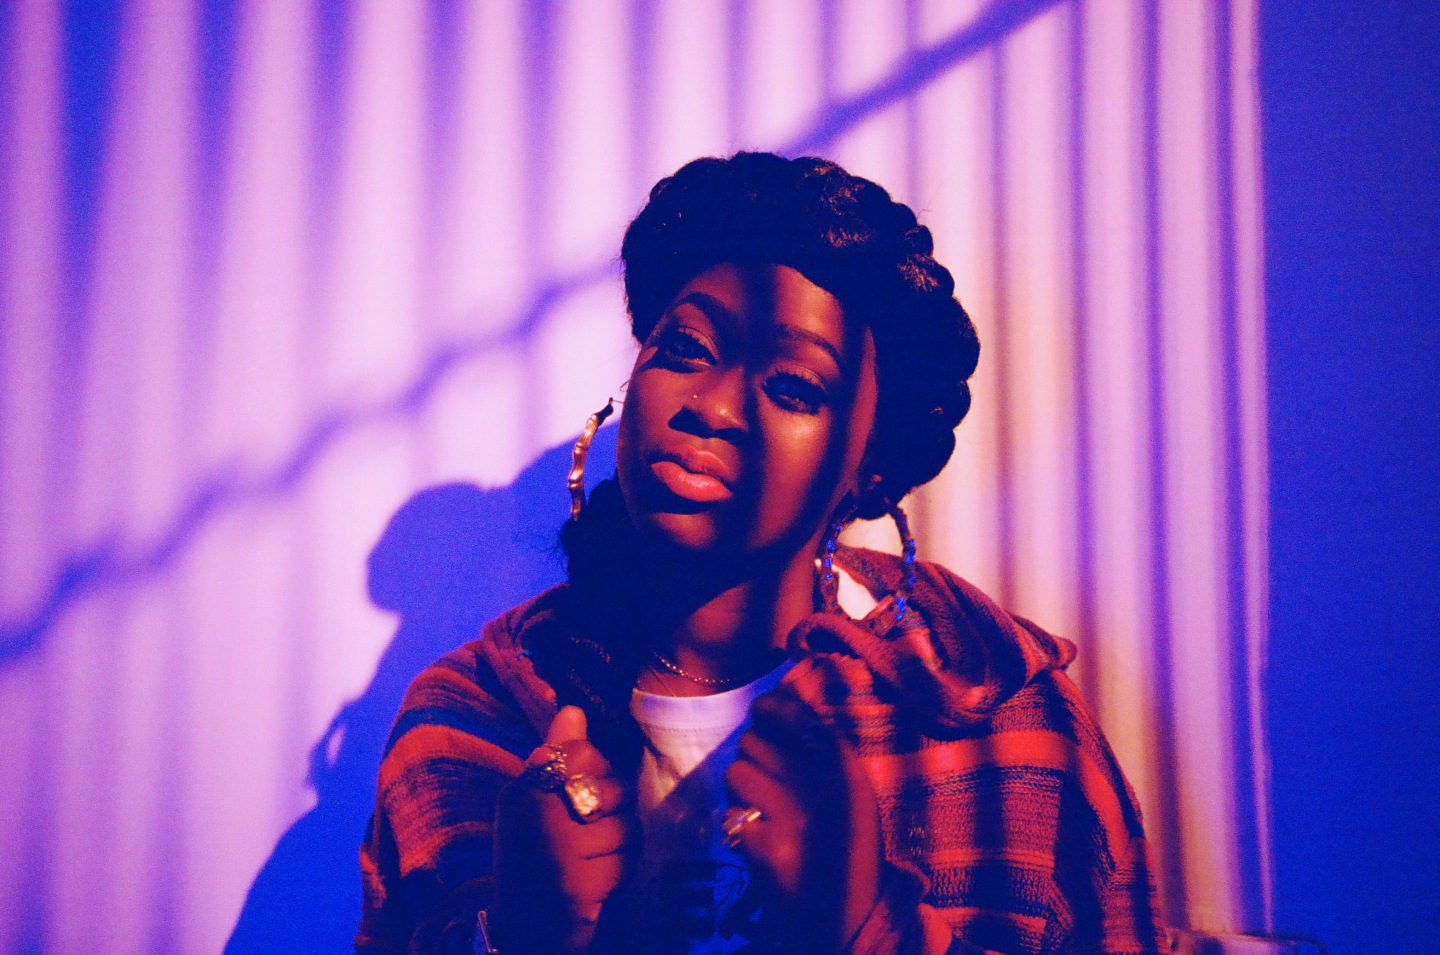 Tierra Whack is building her own world